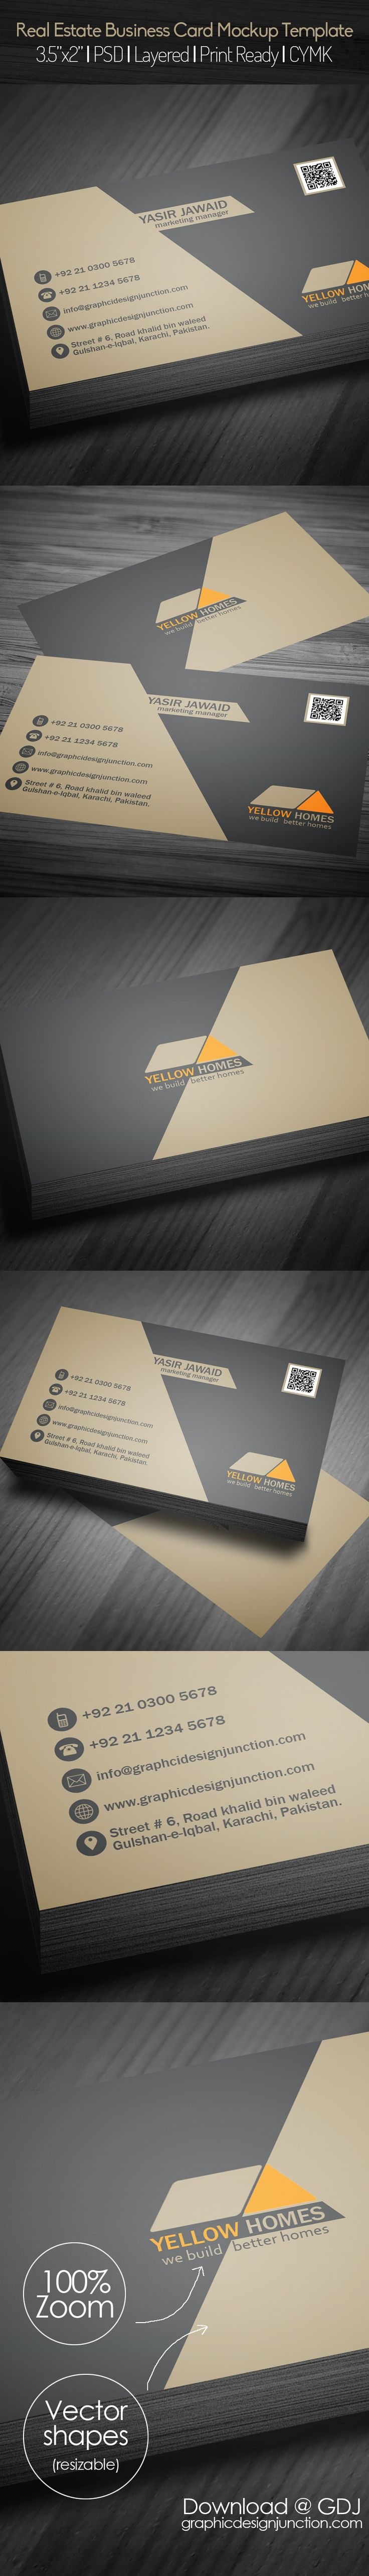 120 best business card images on Pinterest